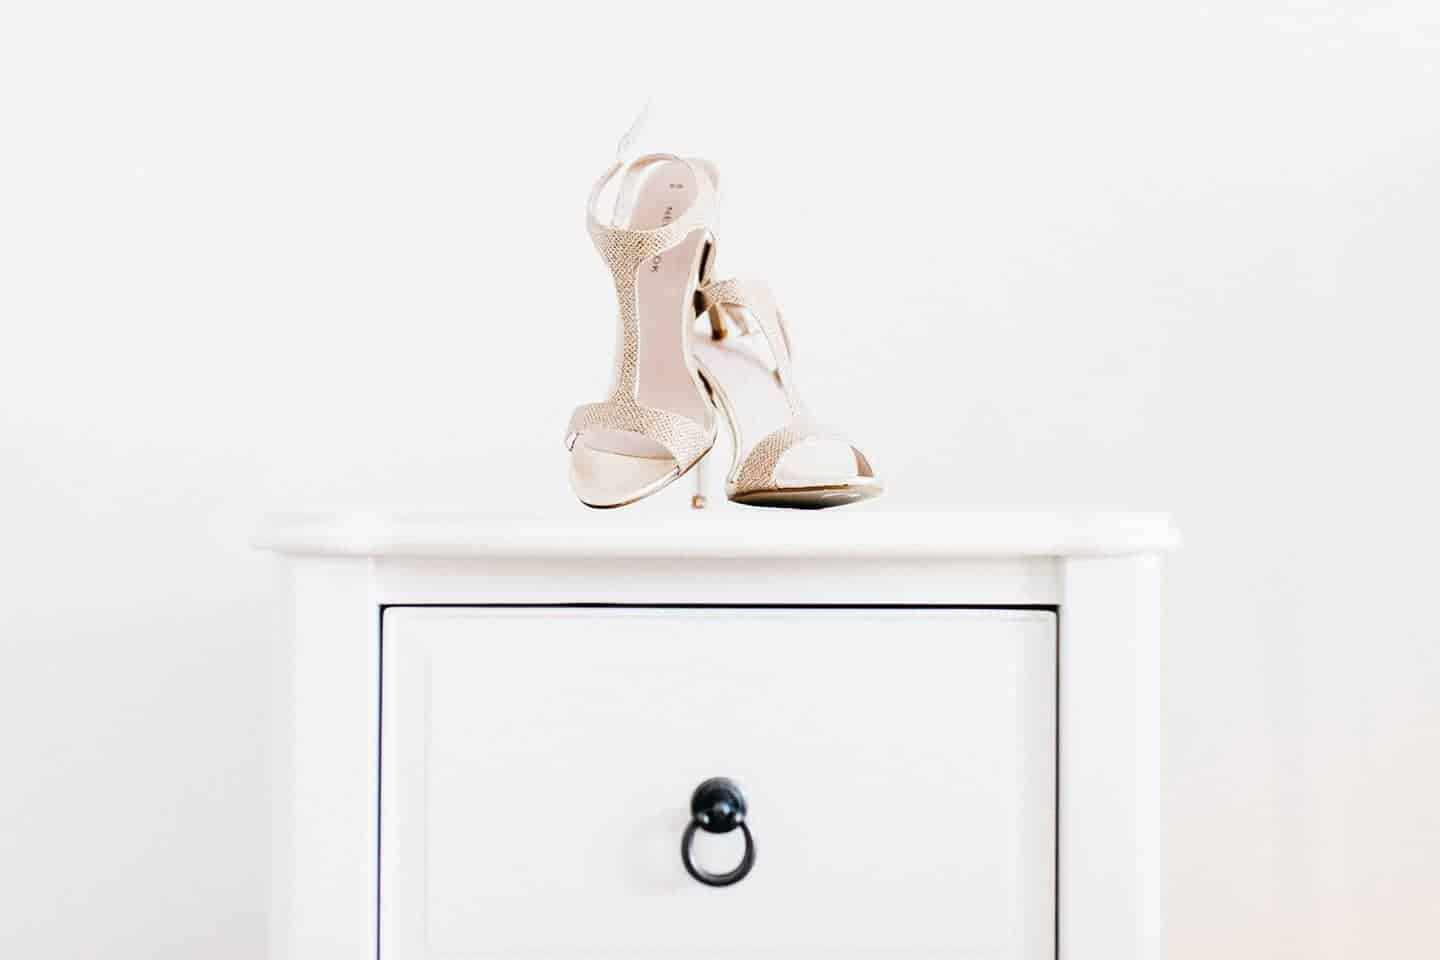 beautiful pair of shoes posed on a clean backdrop